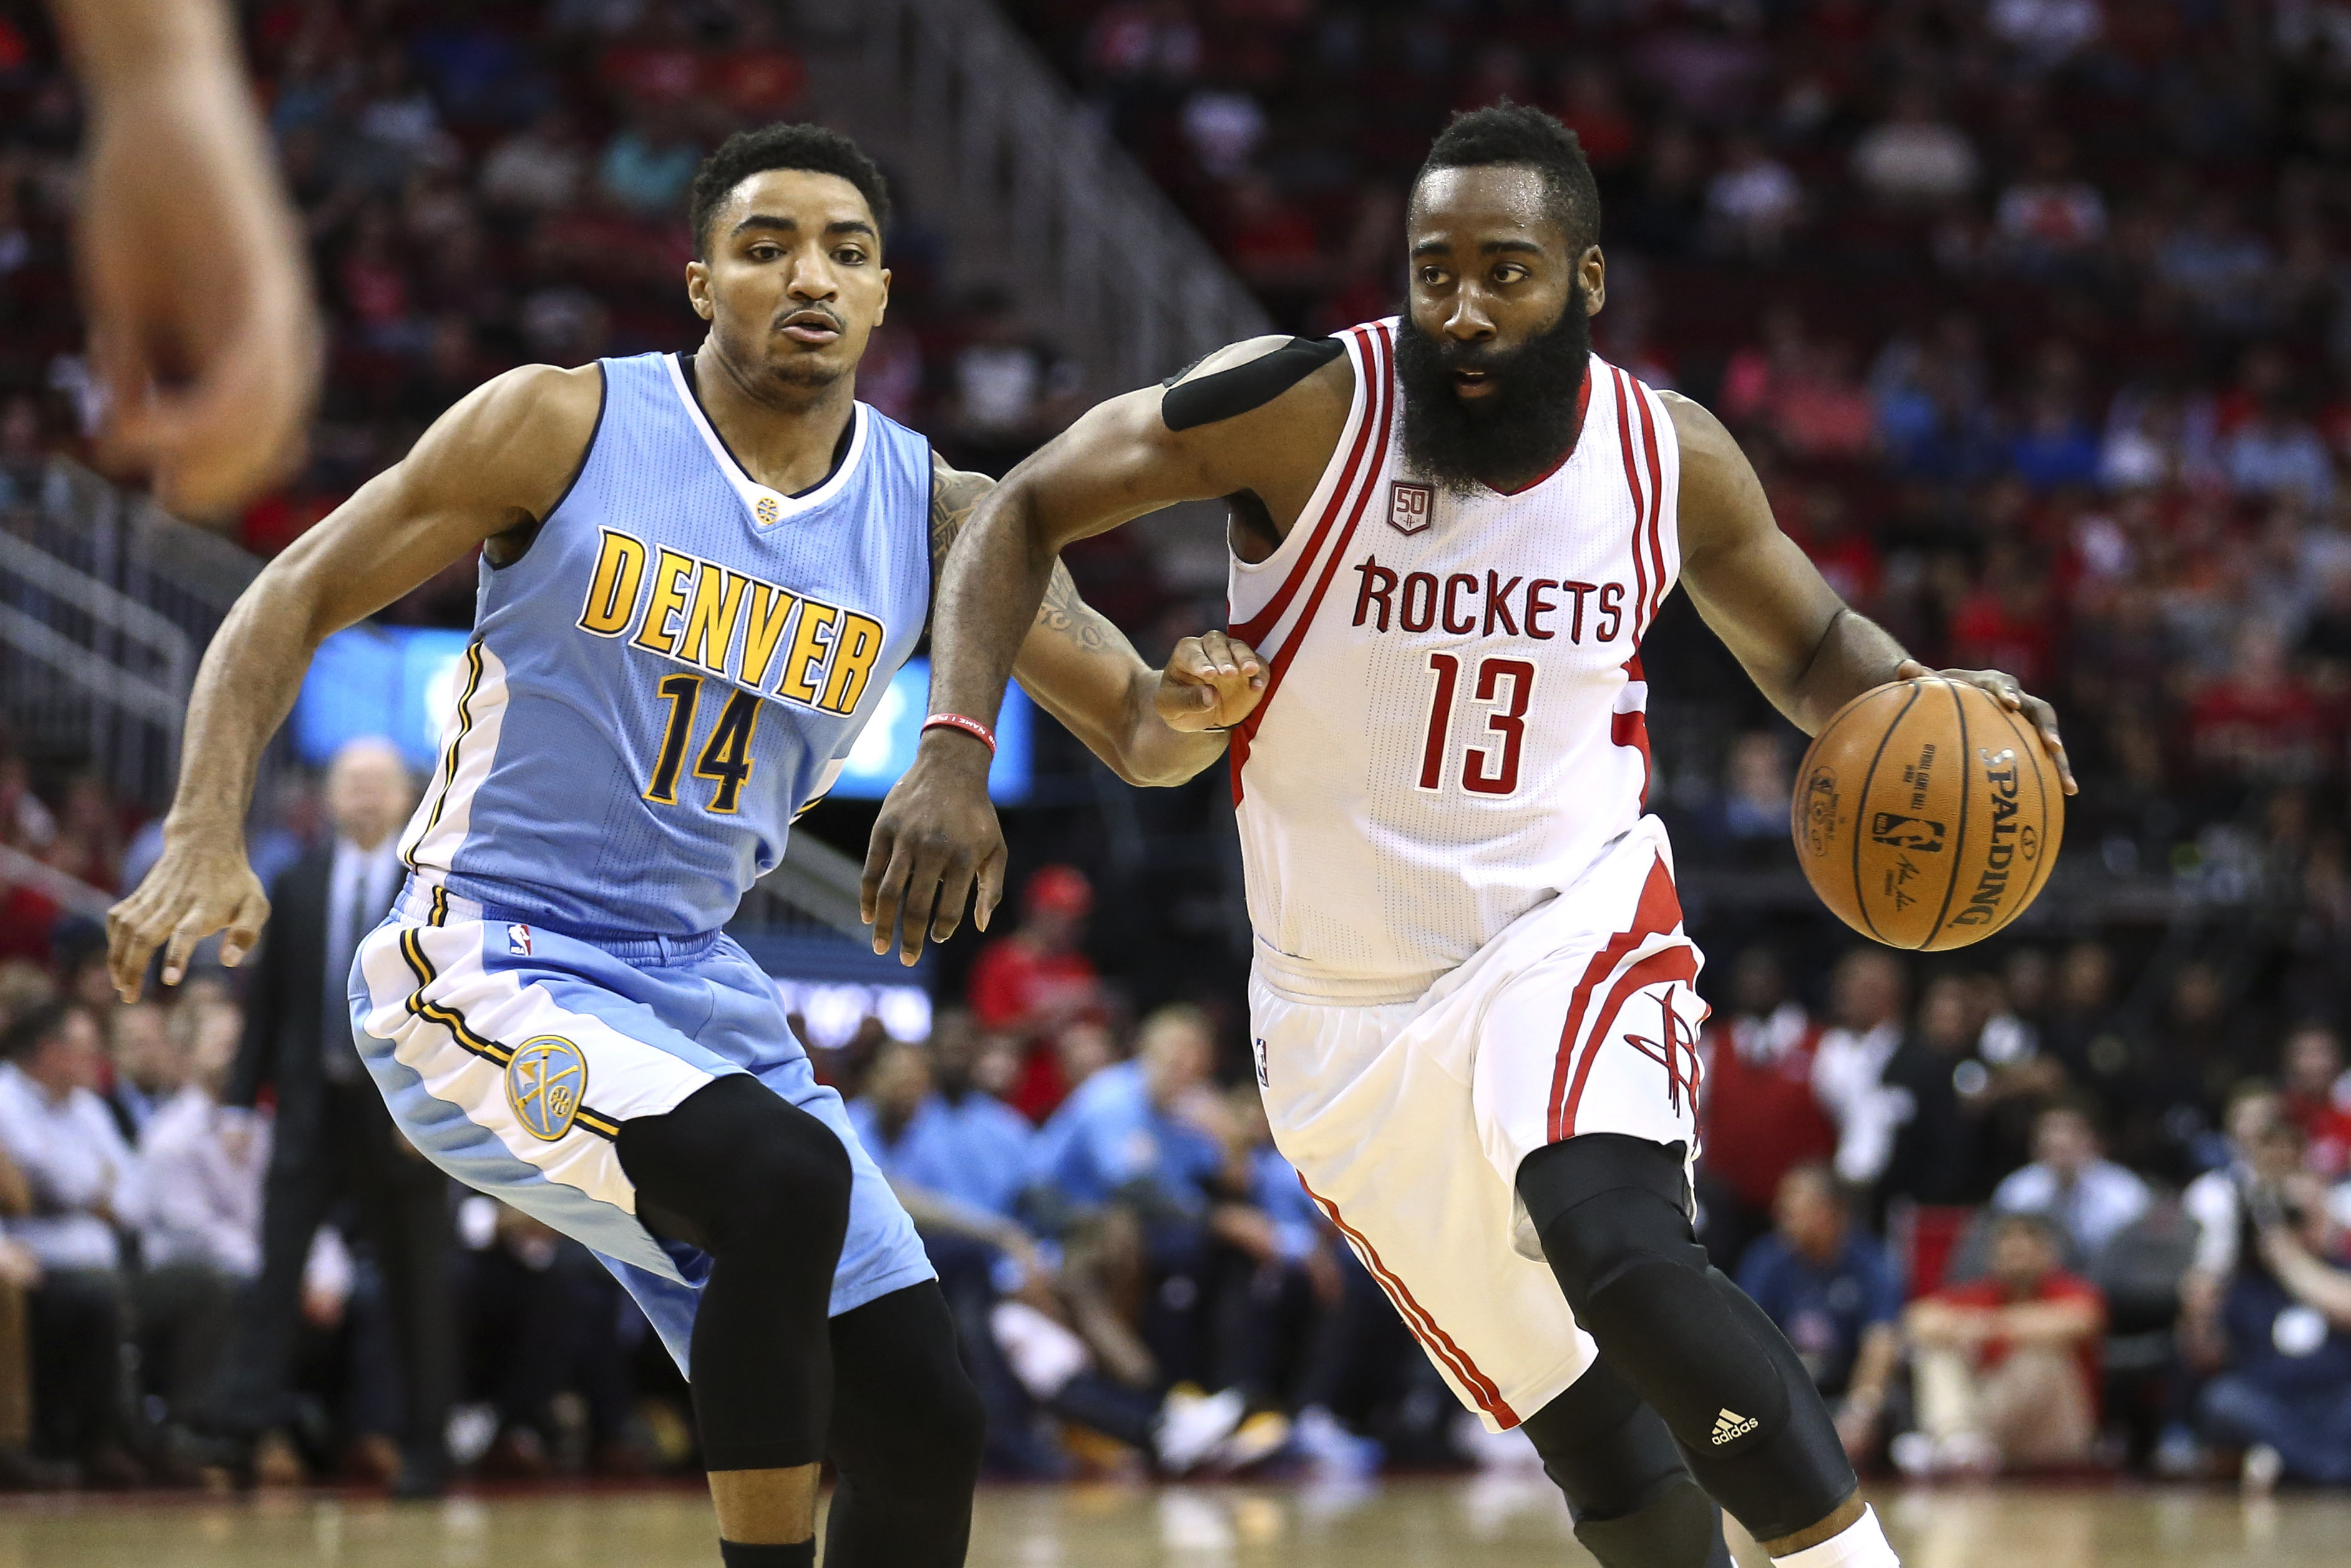 Houston Rockets: James Harden Takes Over Late to Sweep Nuggets